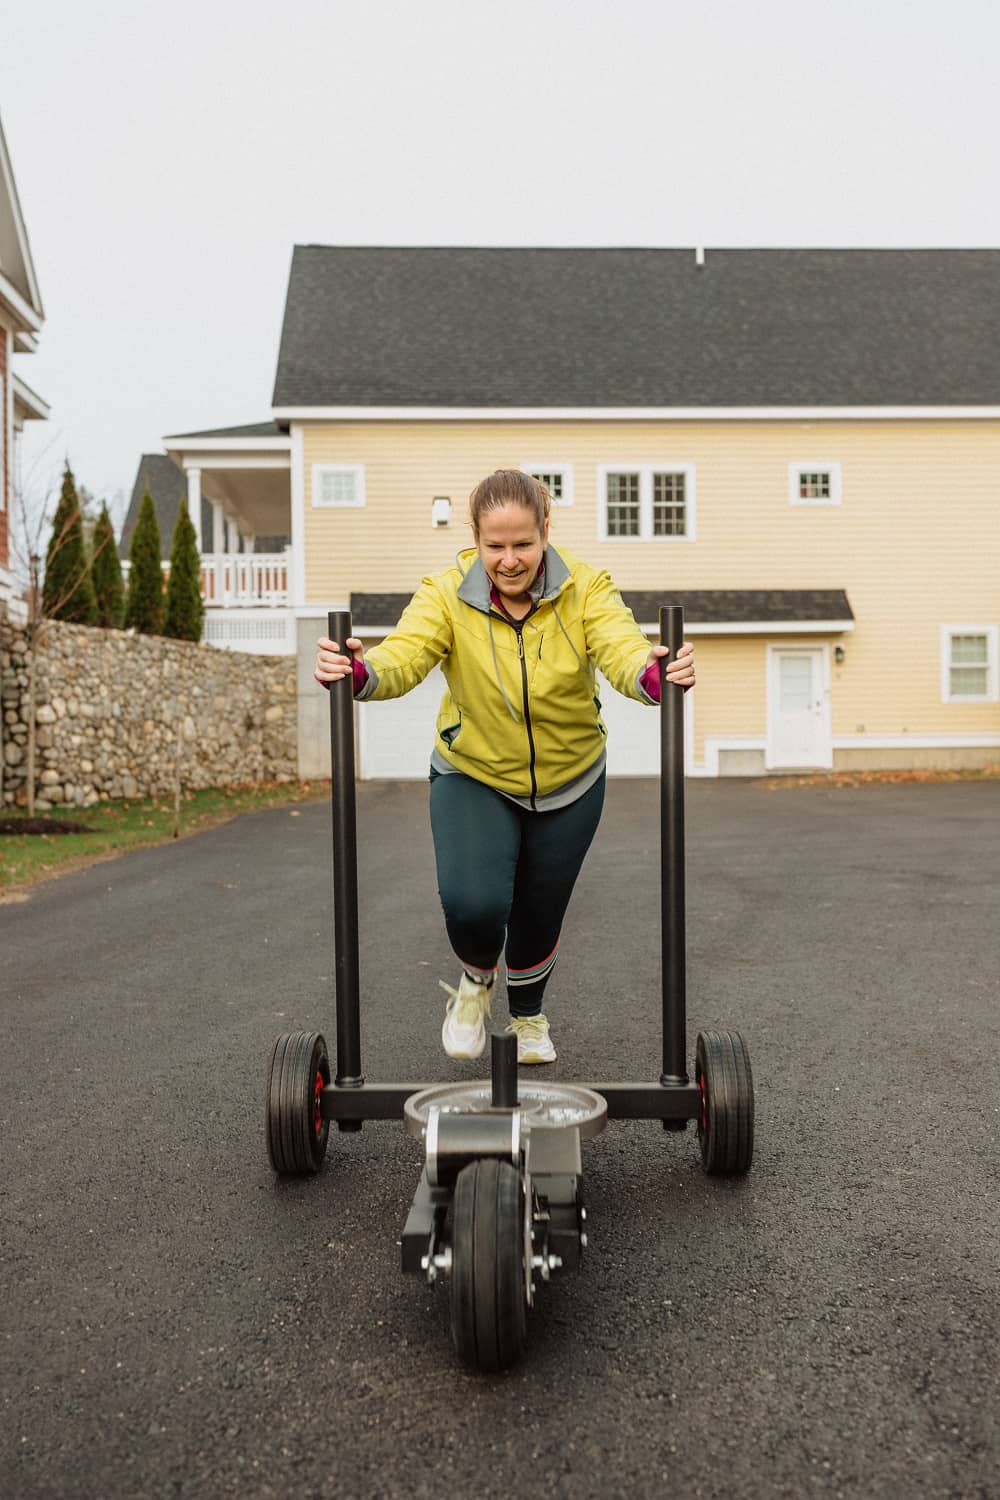 a woman doing a sled push workout